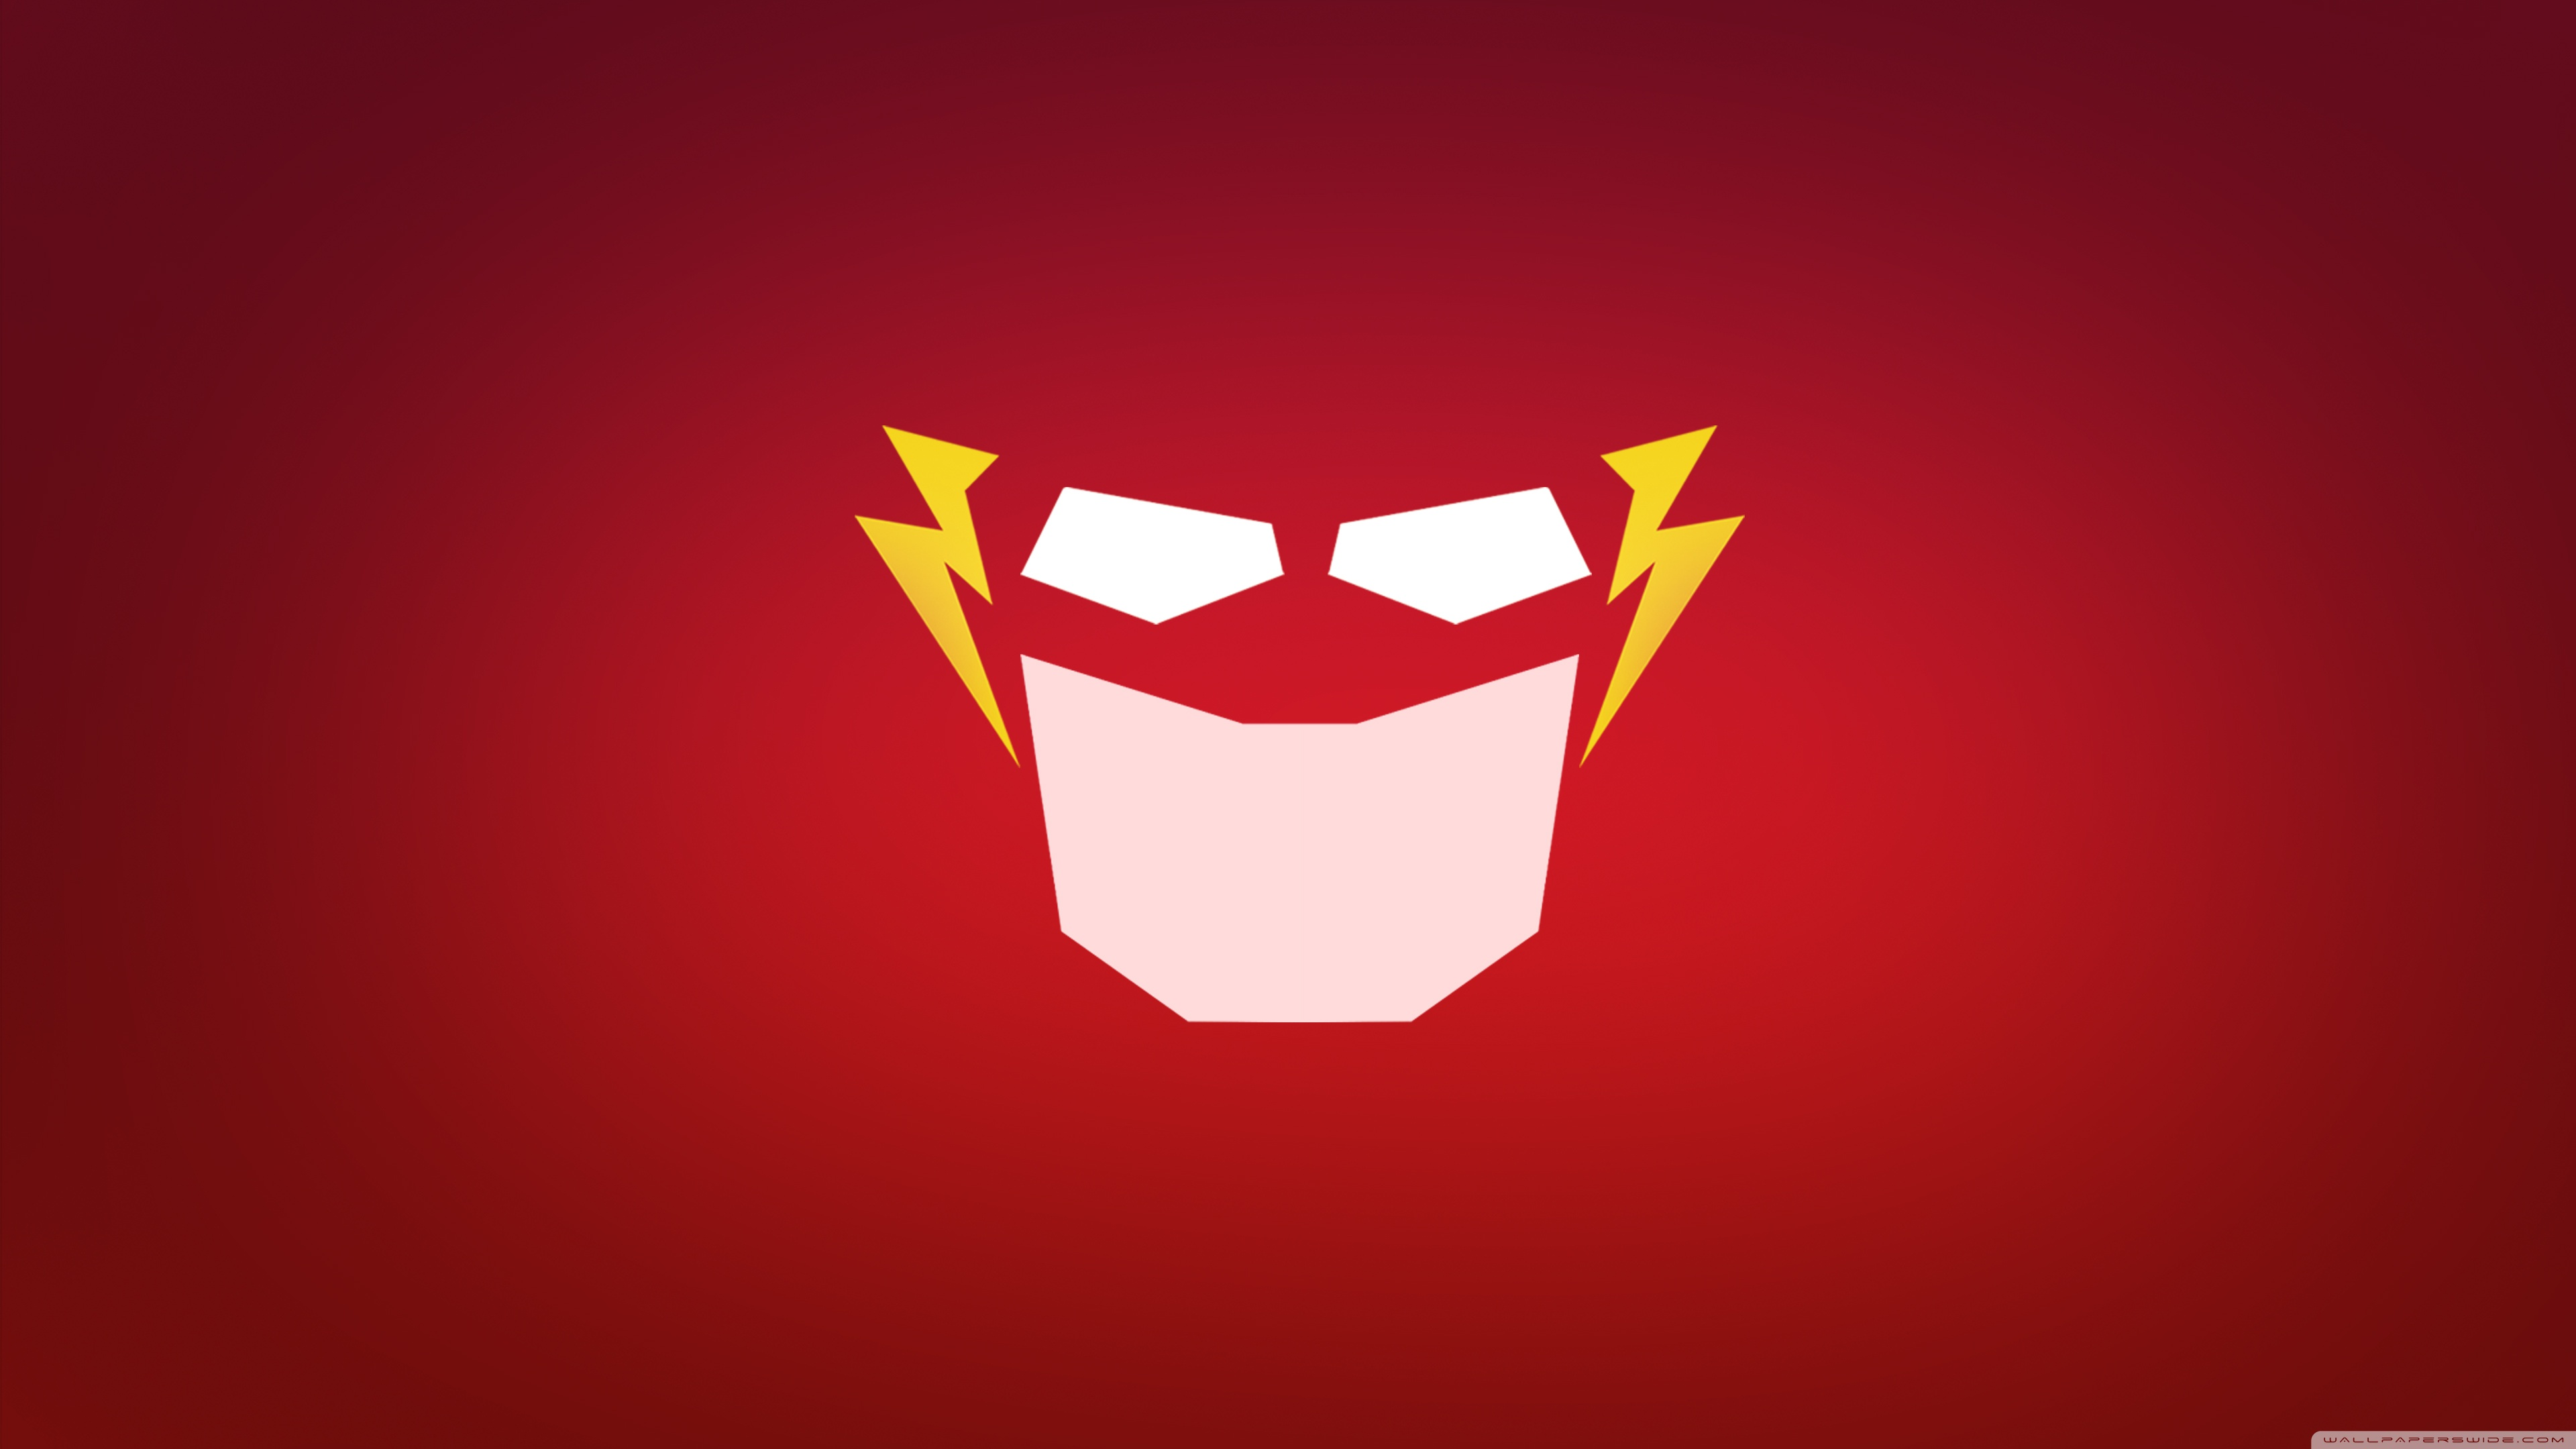 Wallpaper Weekends The Flash Returns MacTrast 3840x2160